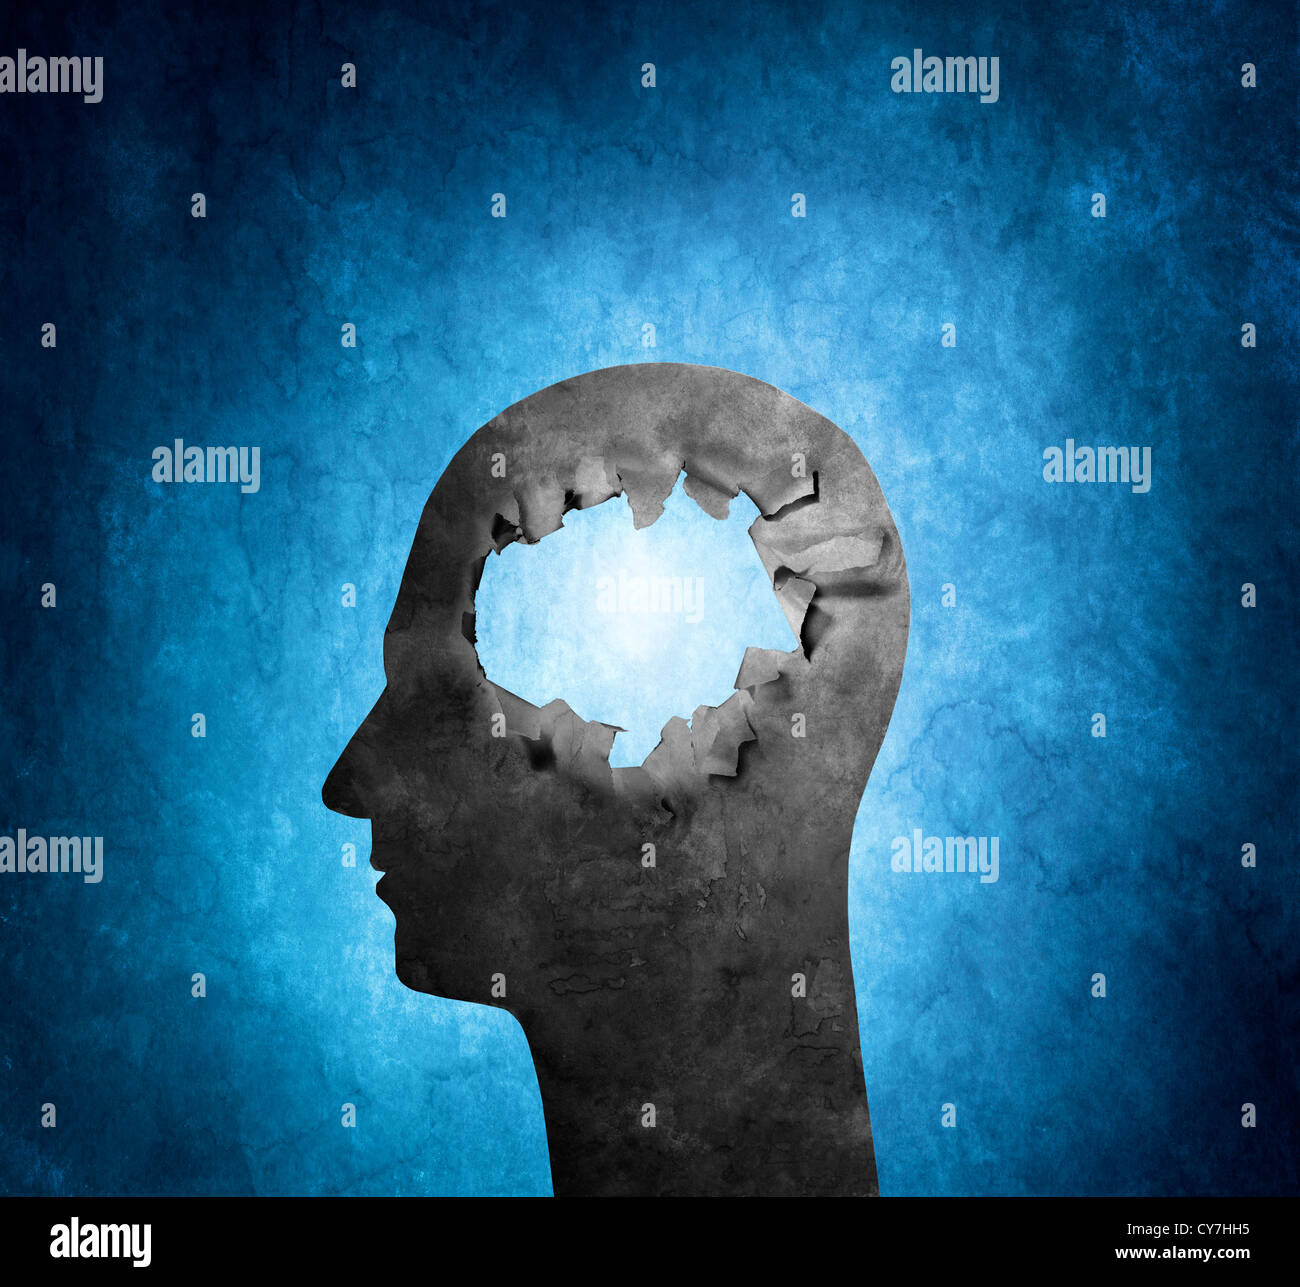 Conceptual image of a cardboard head with a hole. - Stock Image